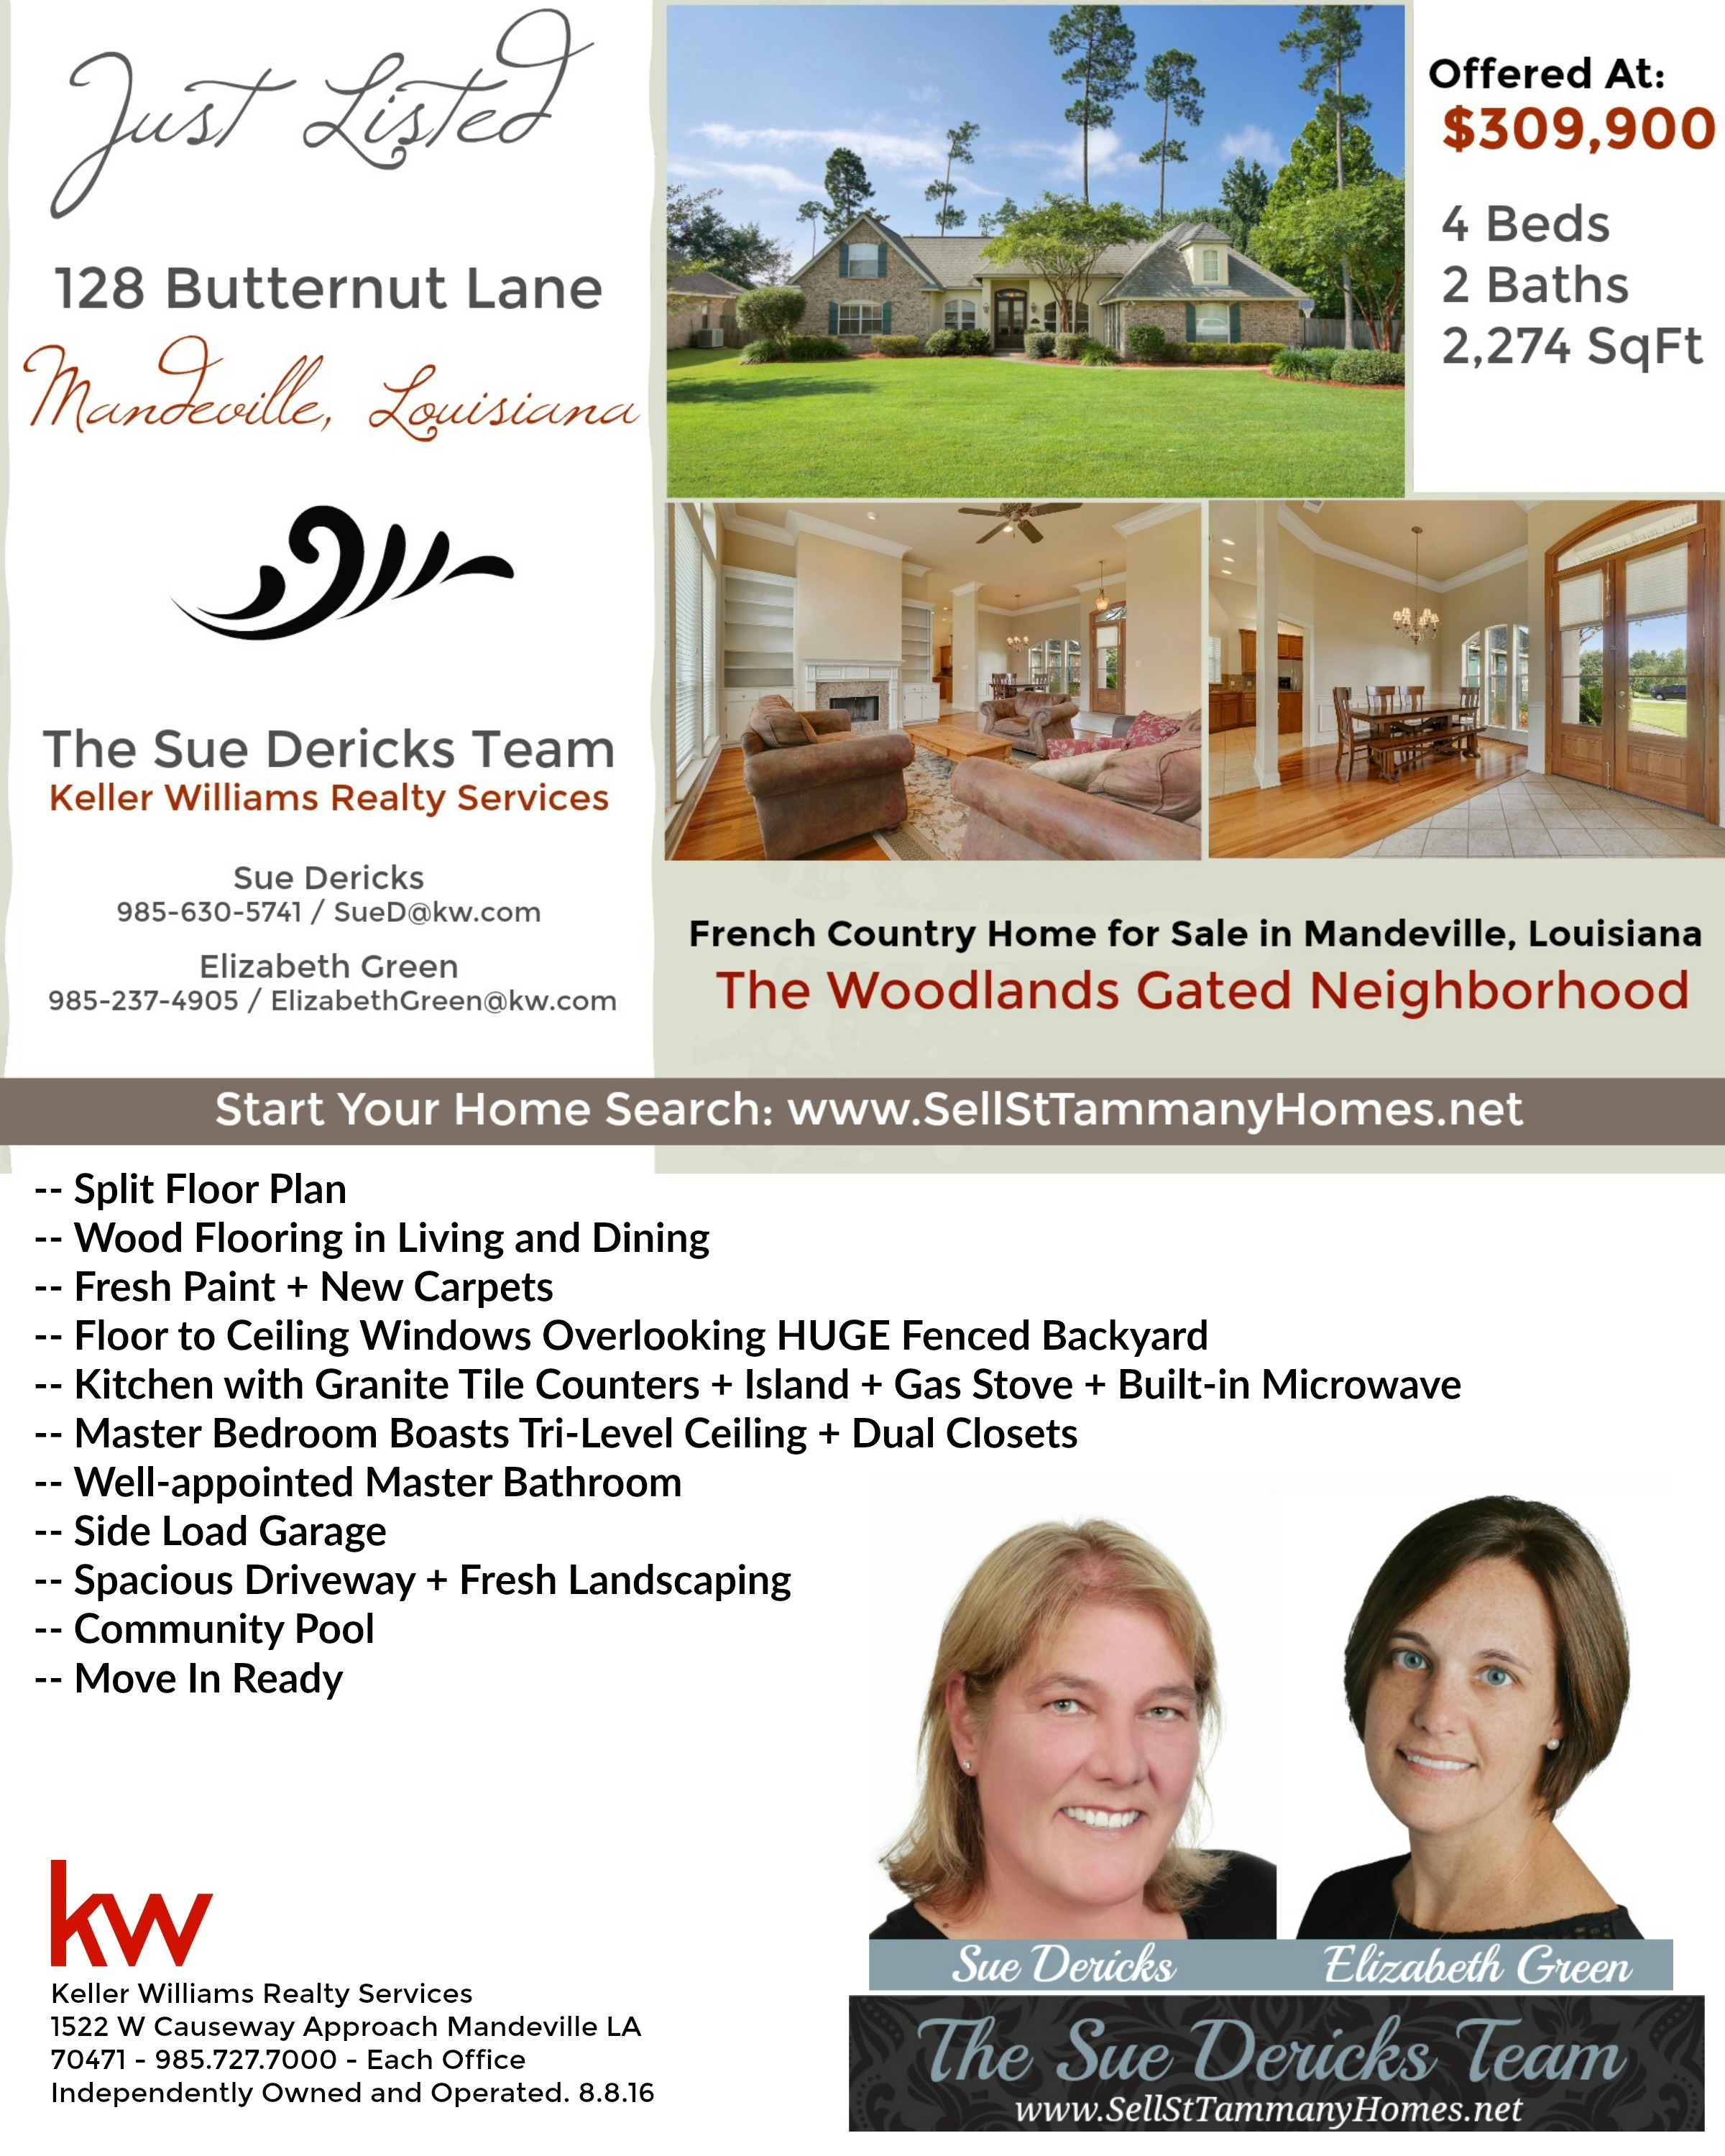 128 Butternut Lane: Home for Sale in Mandeville